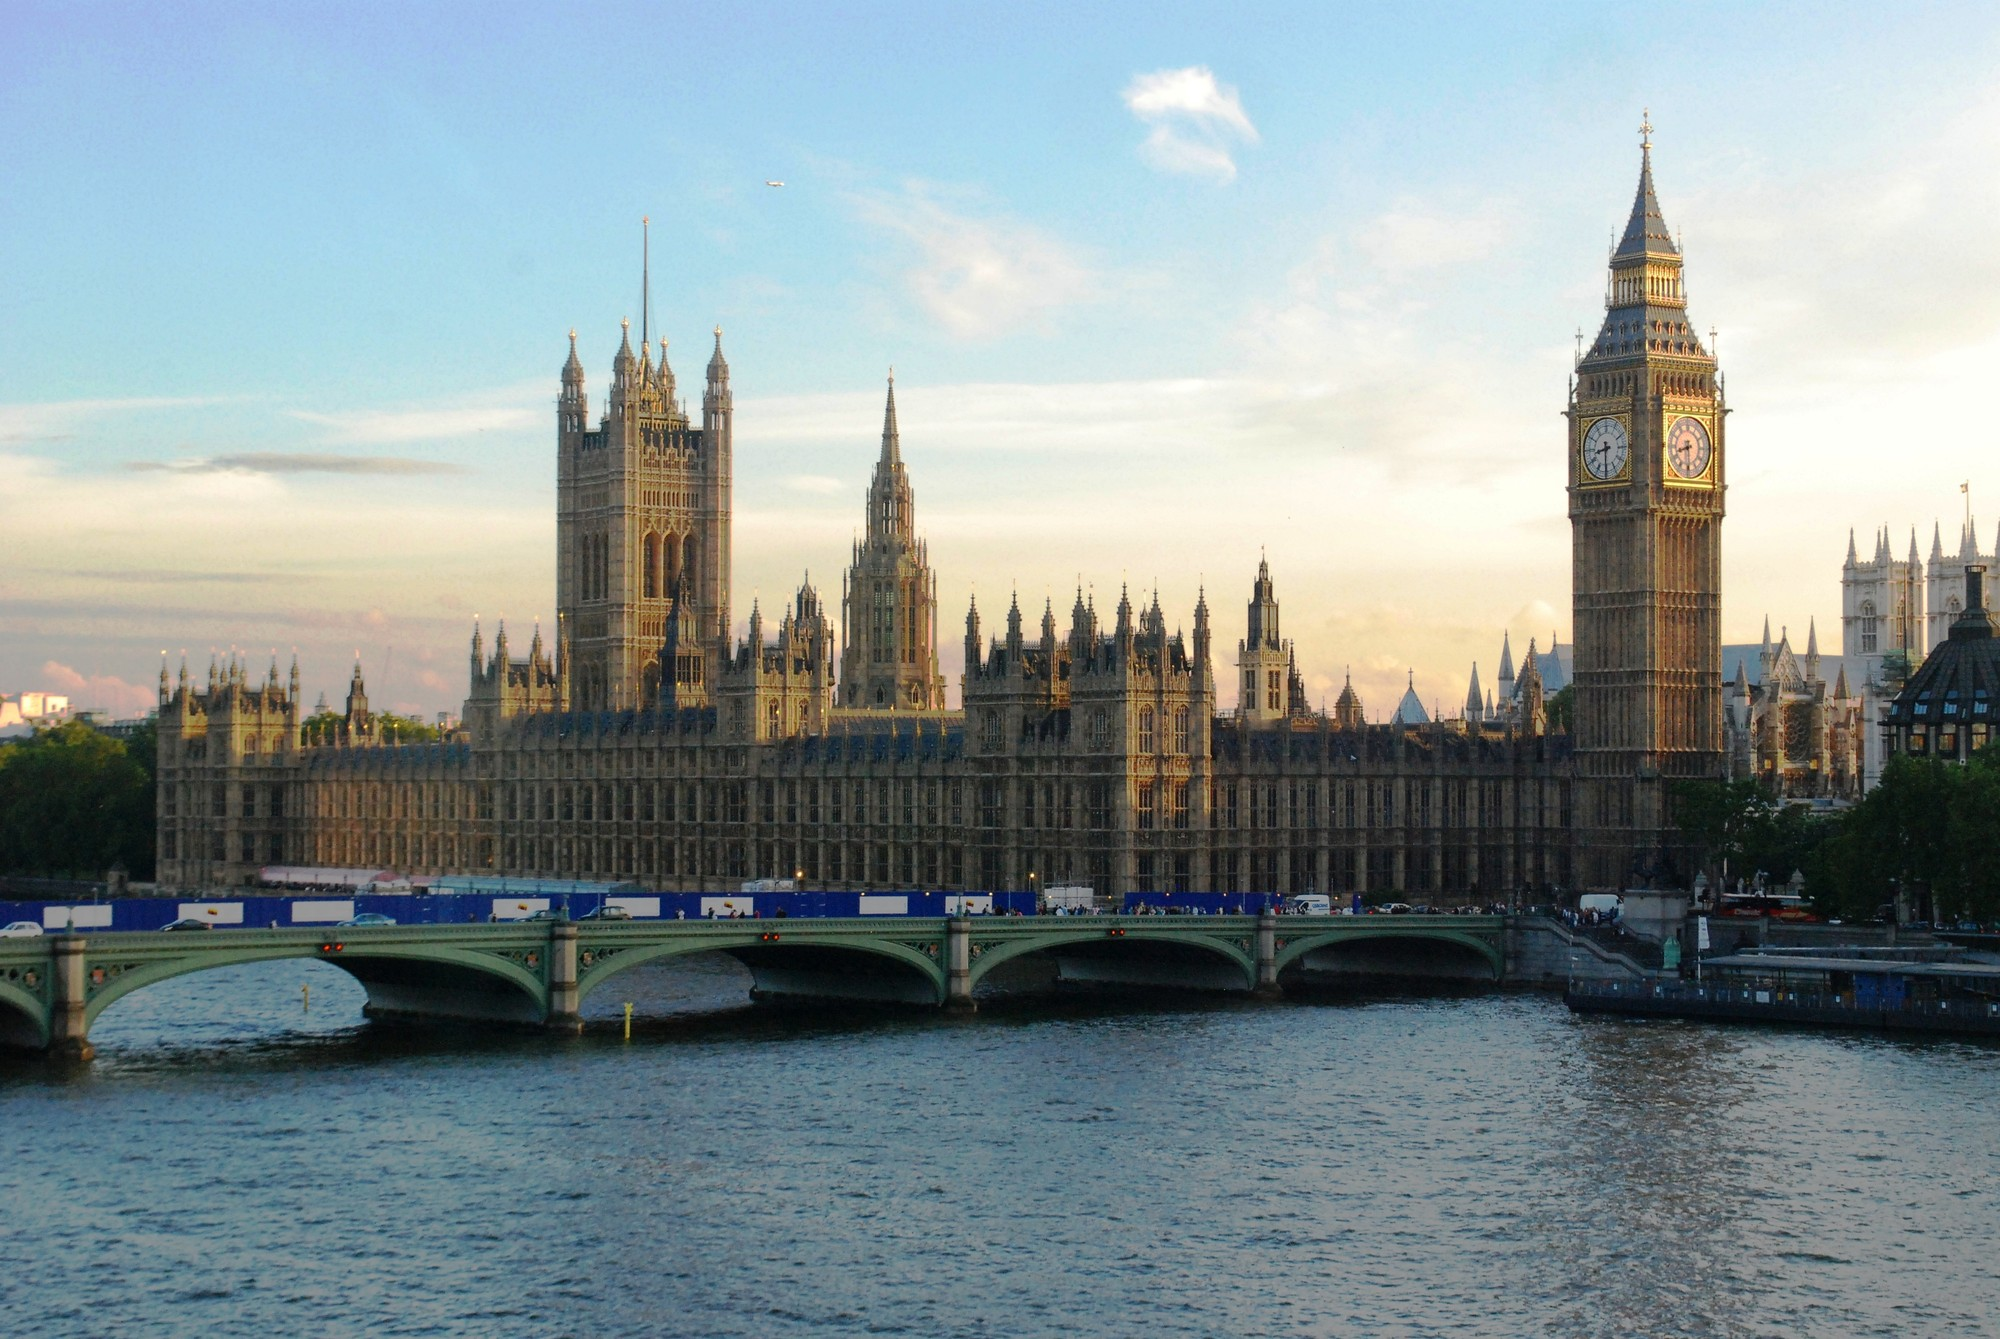 HOK Selected to Refurbish Palace of Westminster , Palace of Westminster via Wikipedia